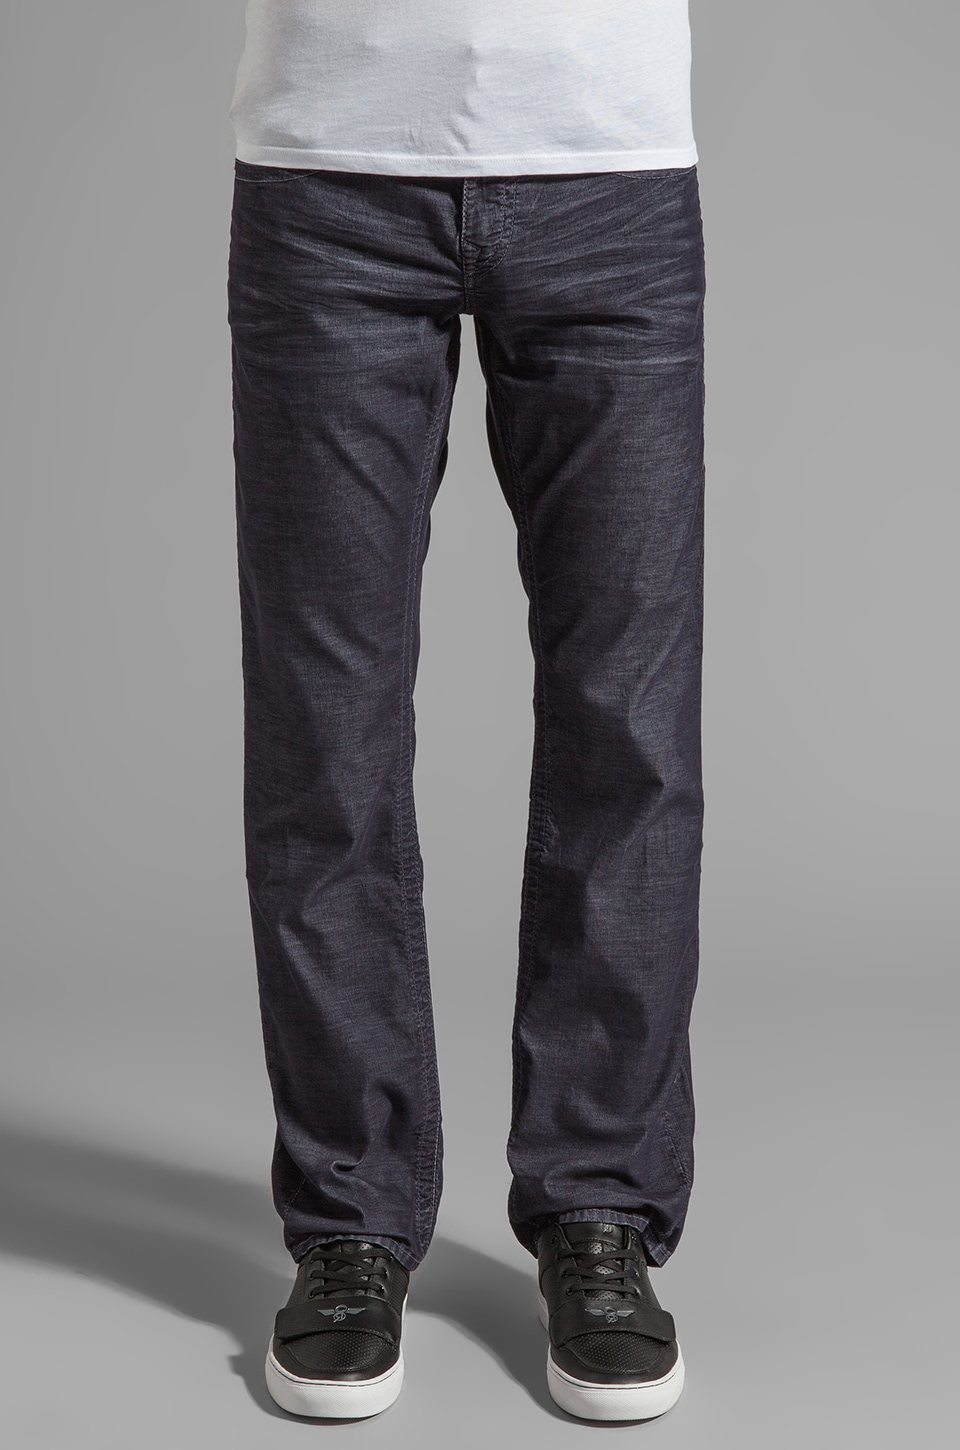 True Religion Ricky Corduroy Classics in Dark Navy